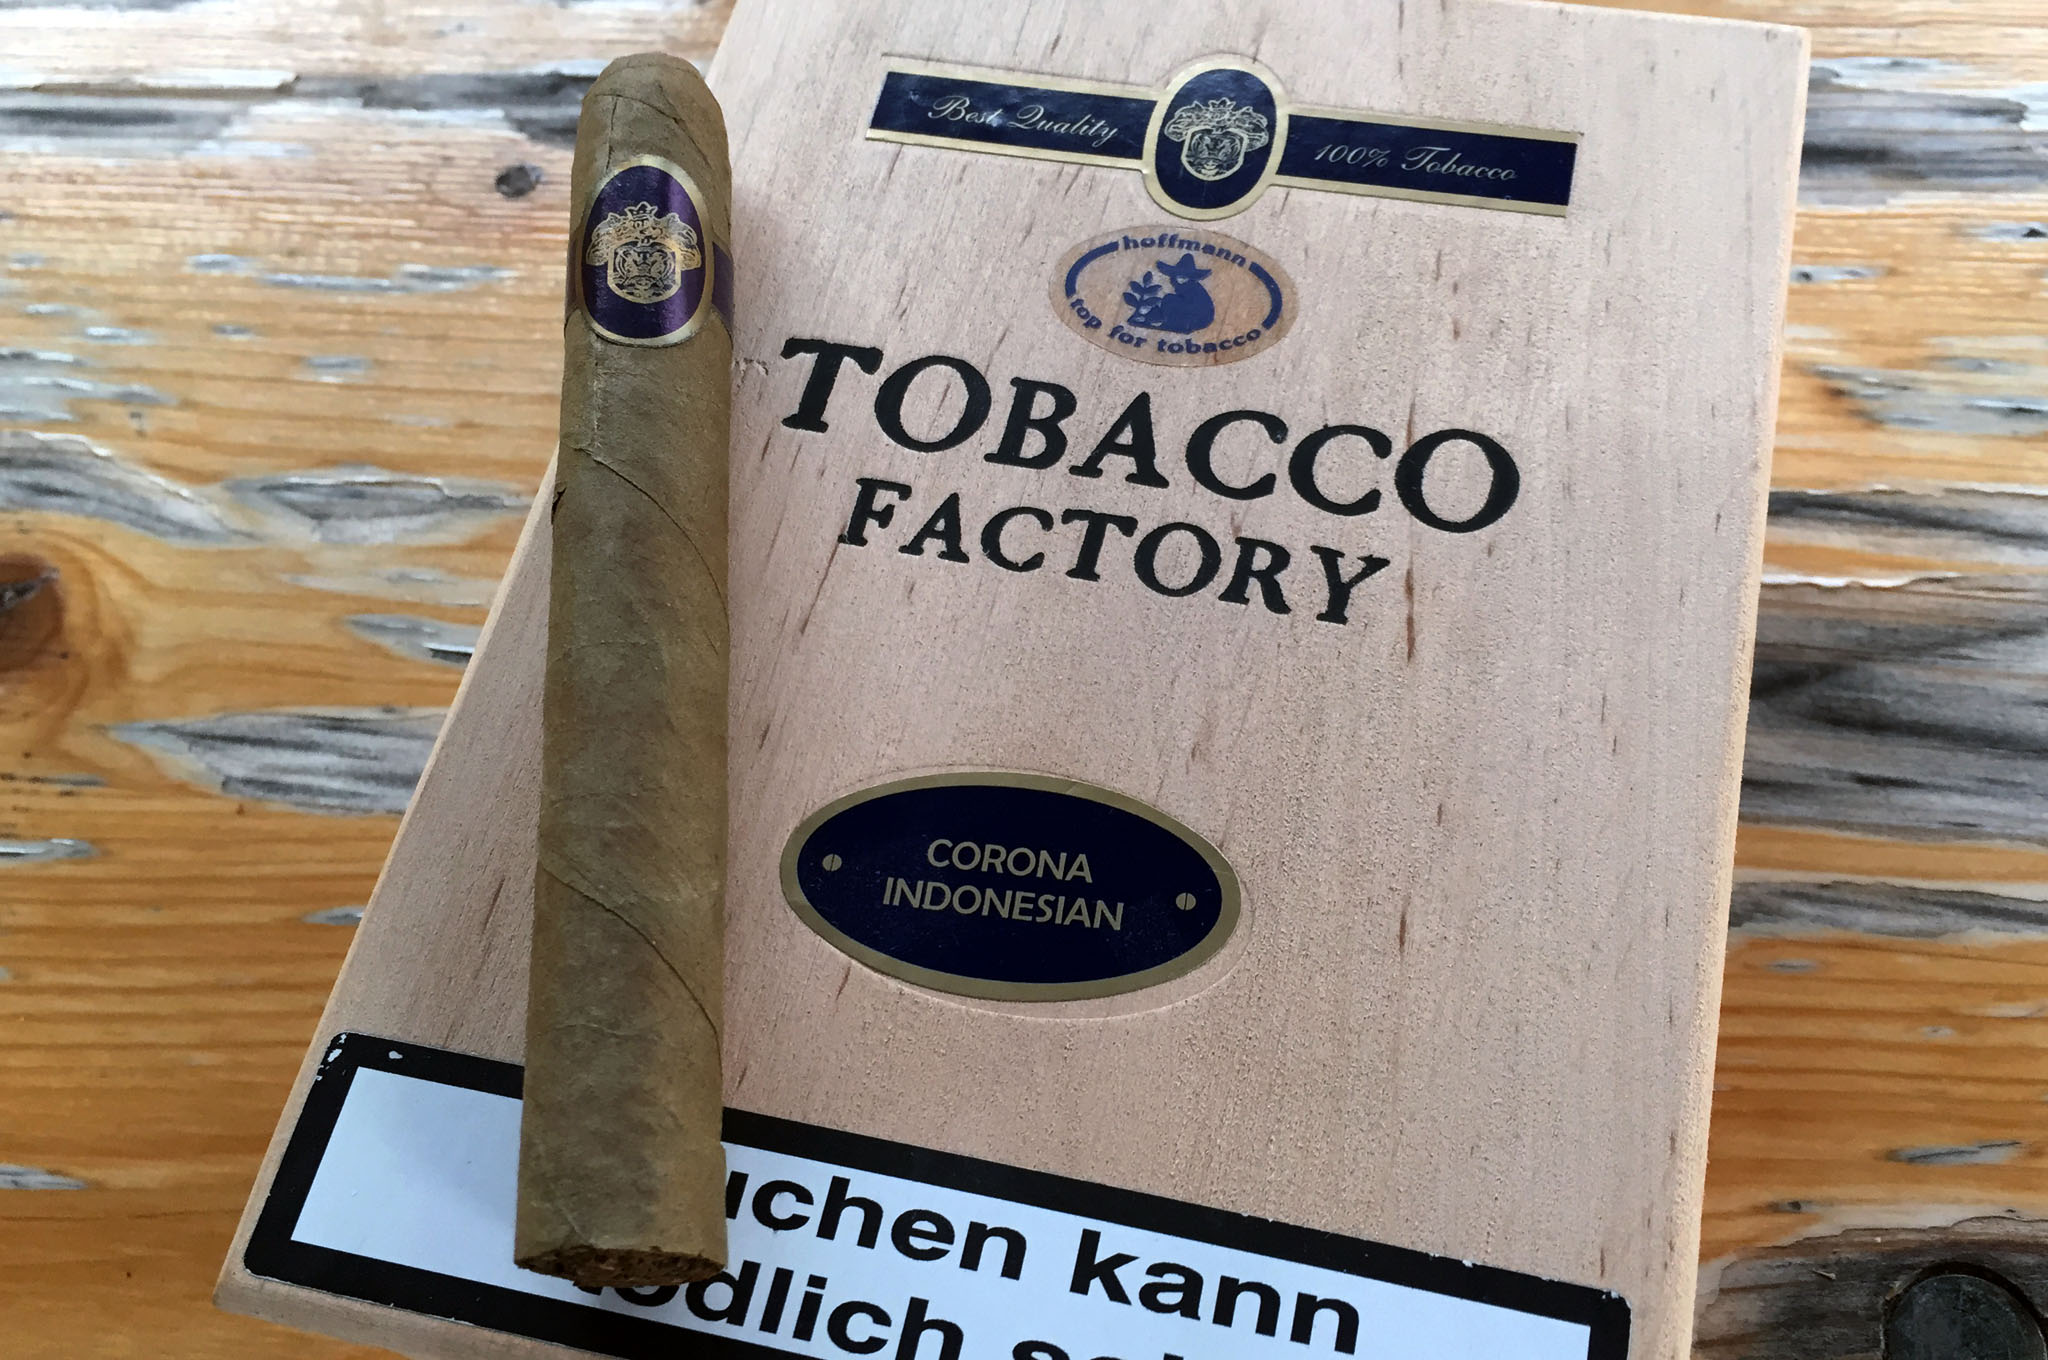 Tobacco Factory, Corona Indonesian